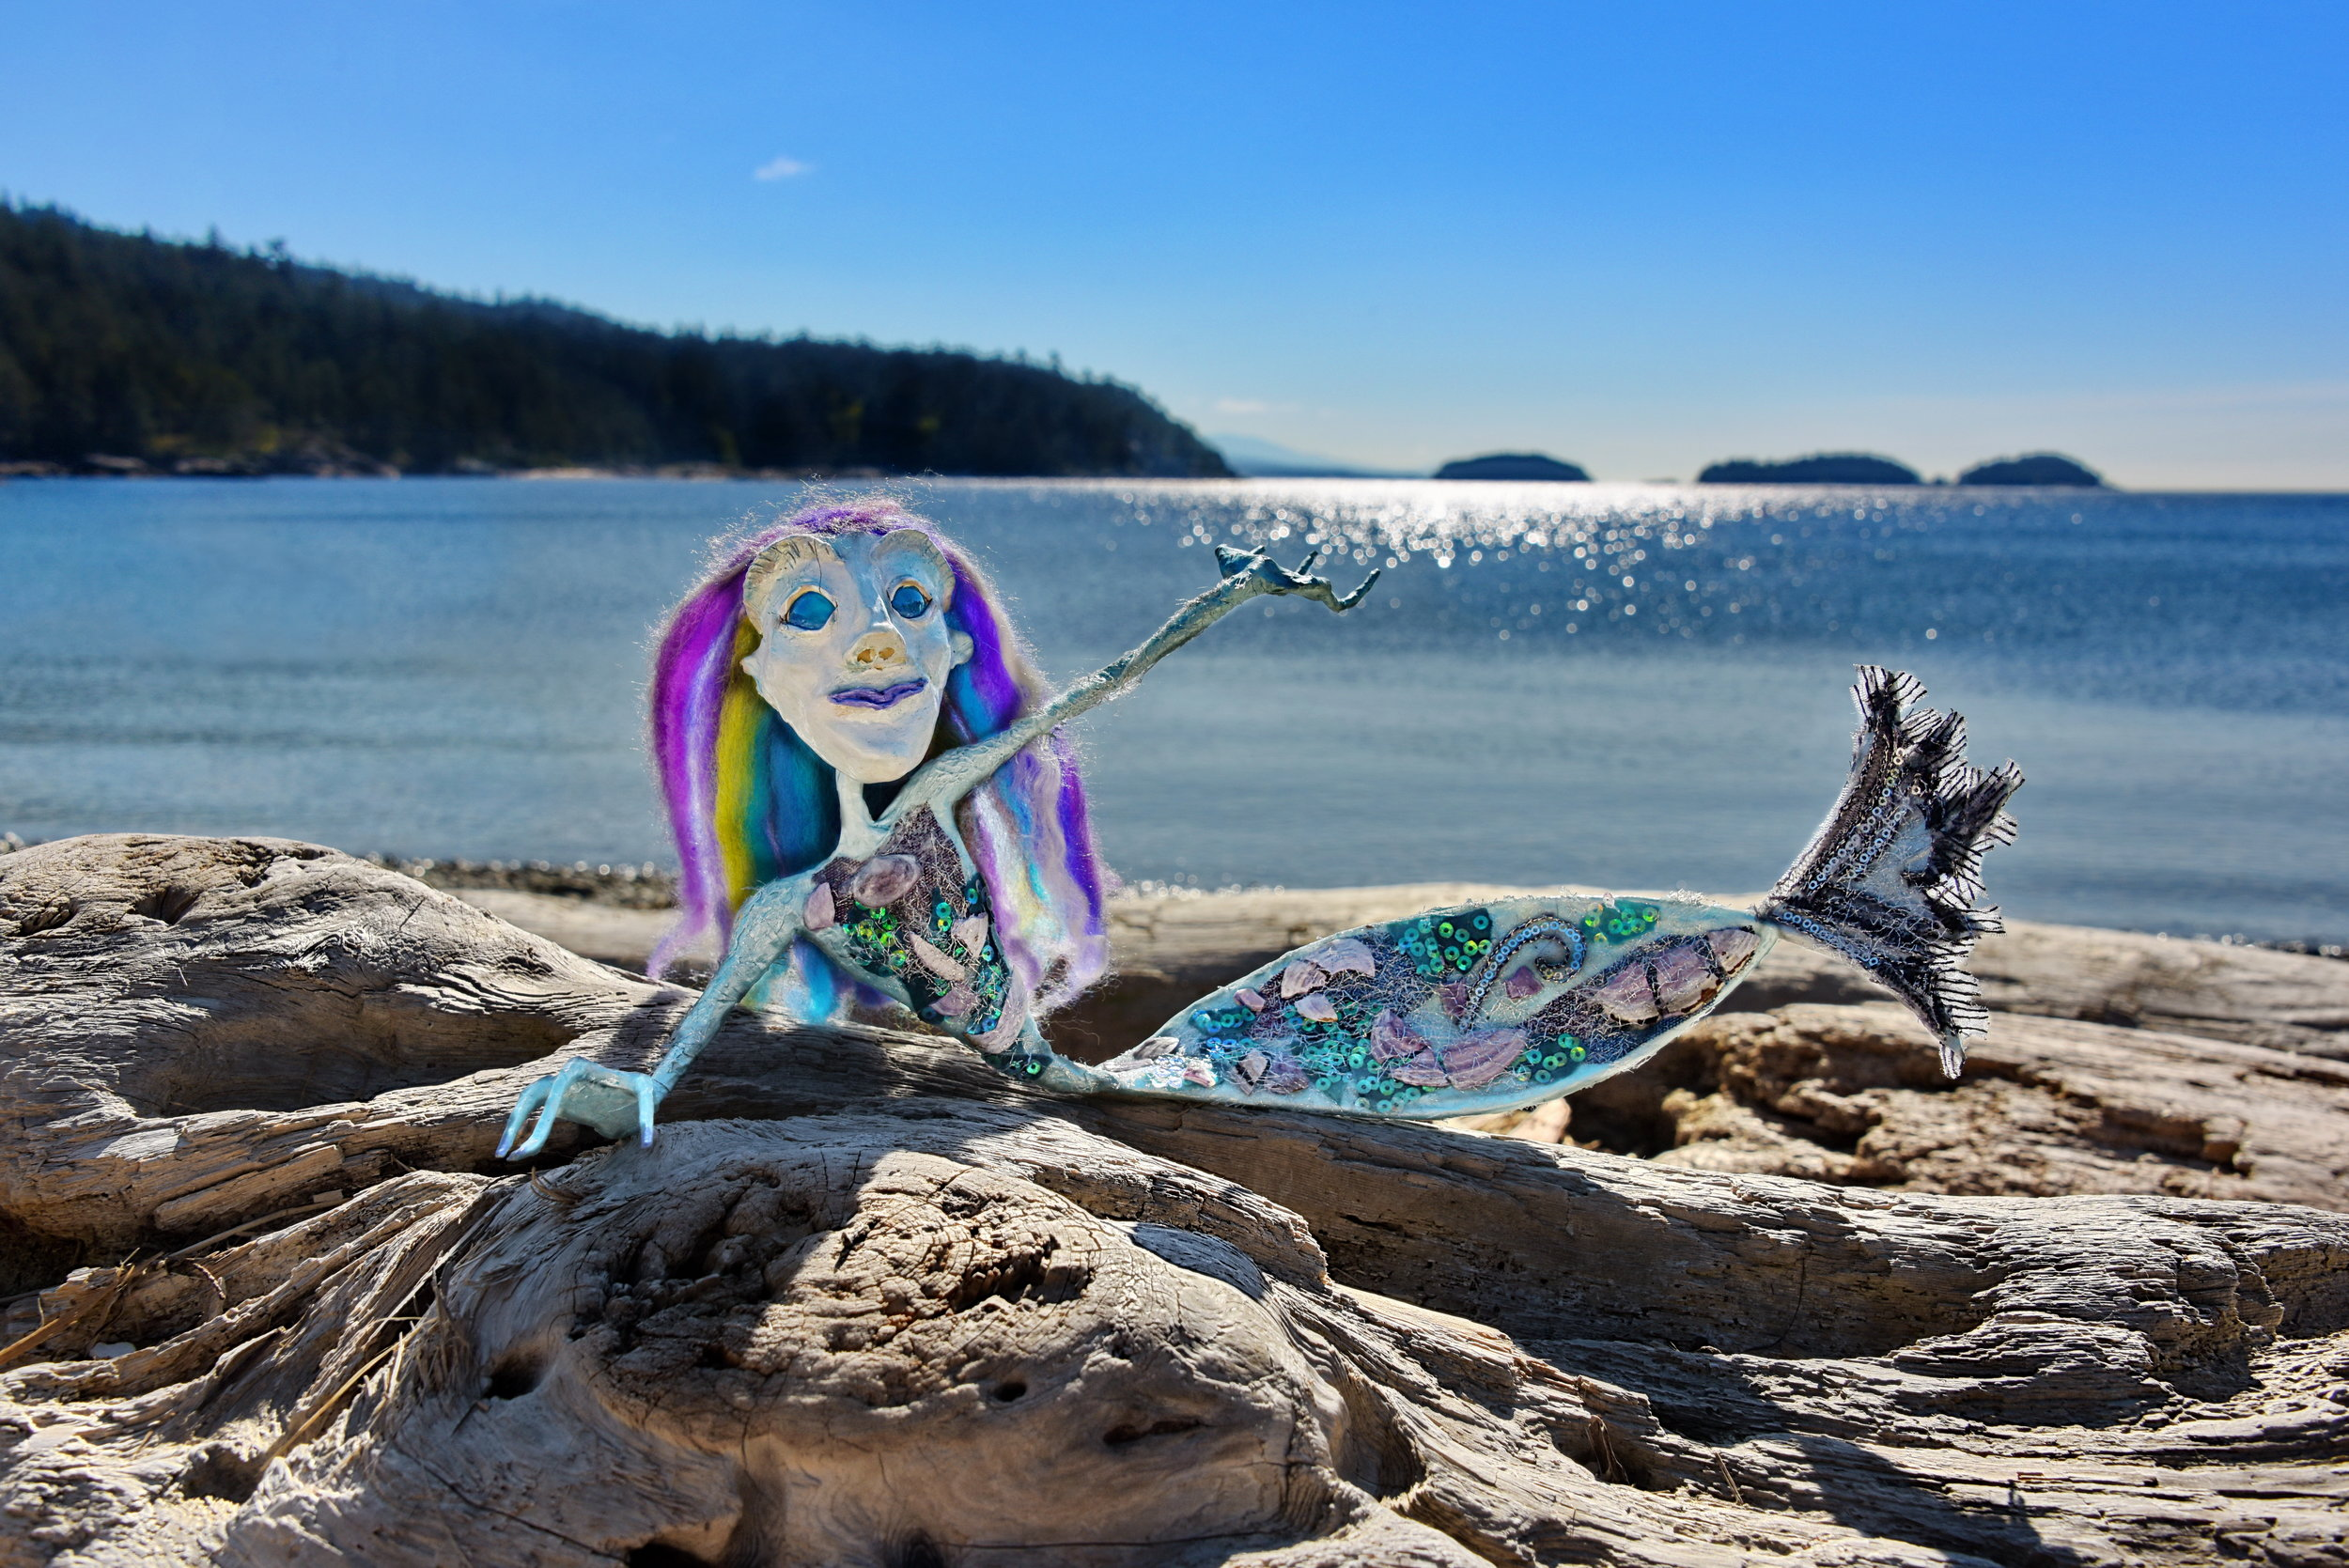 Havvie the Mer lounging at Sargeant Bay    16 x 24 Canvas 225.00 Also available as a 5 x 7 Art Card